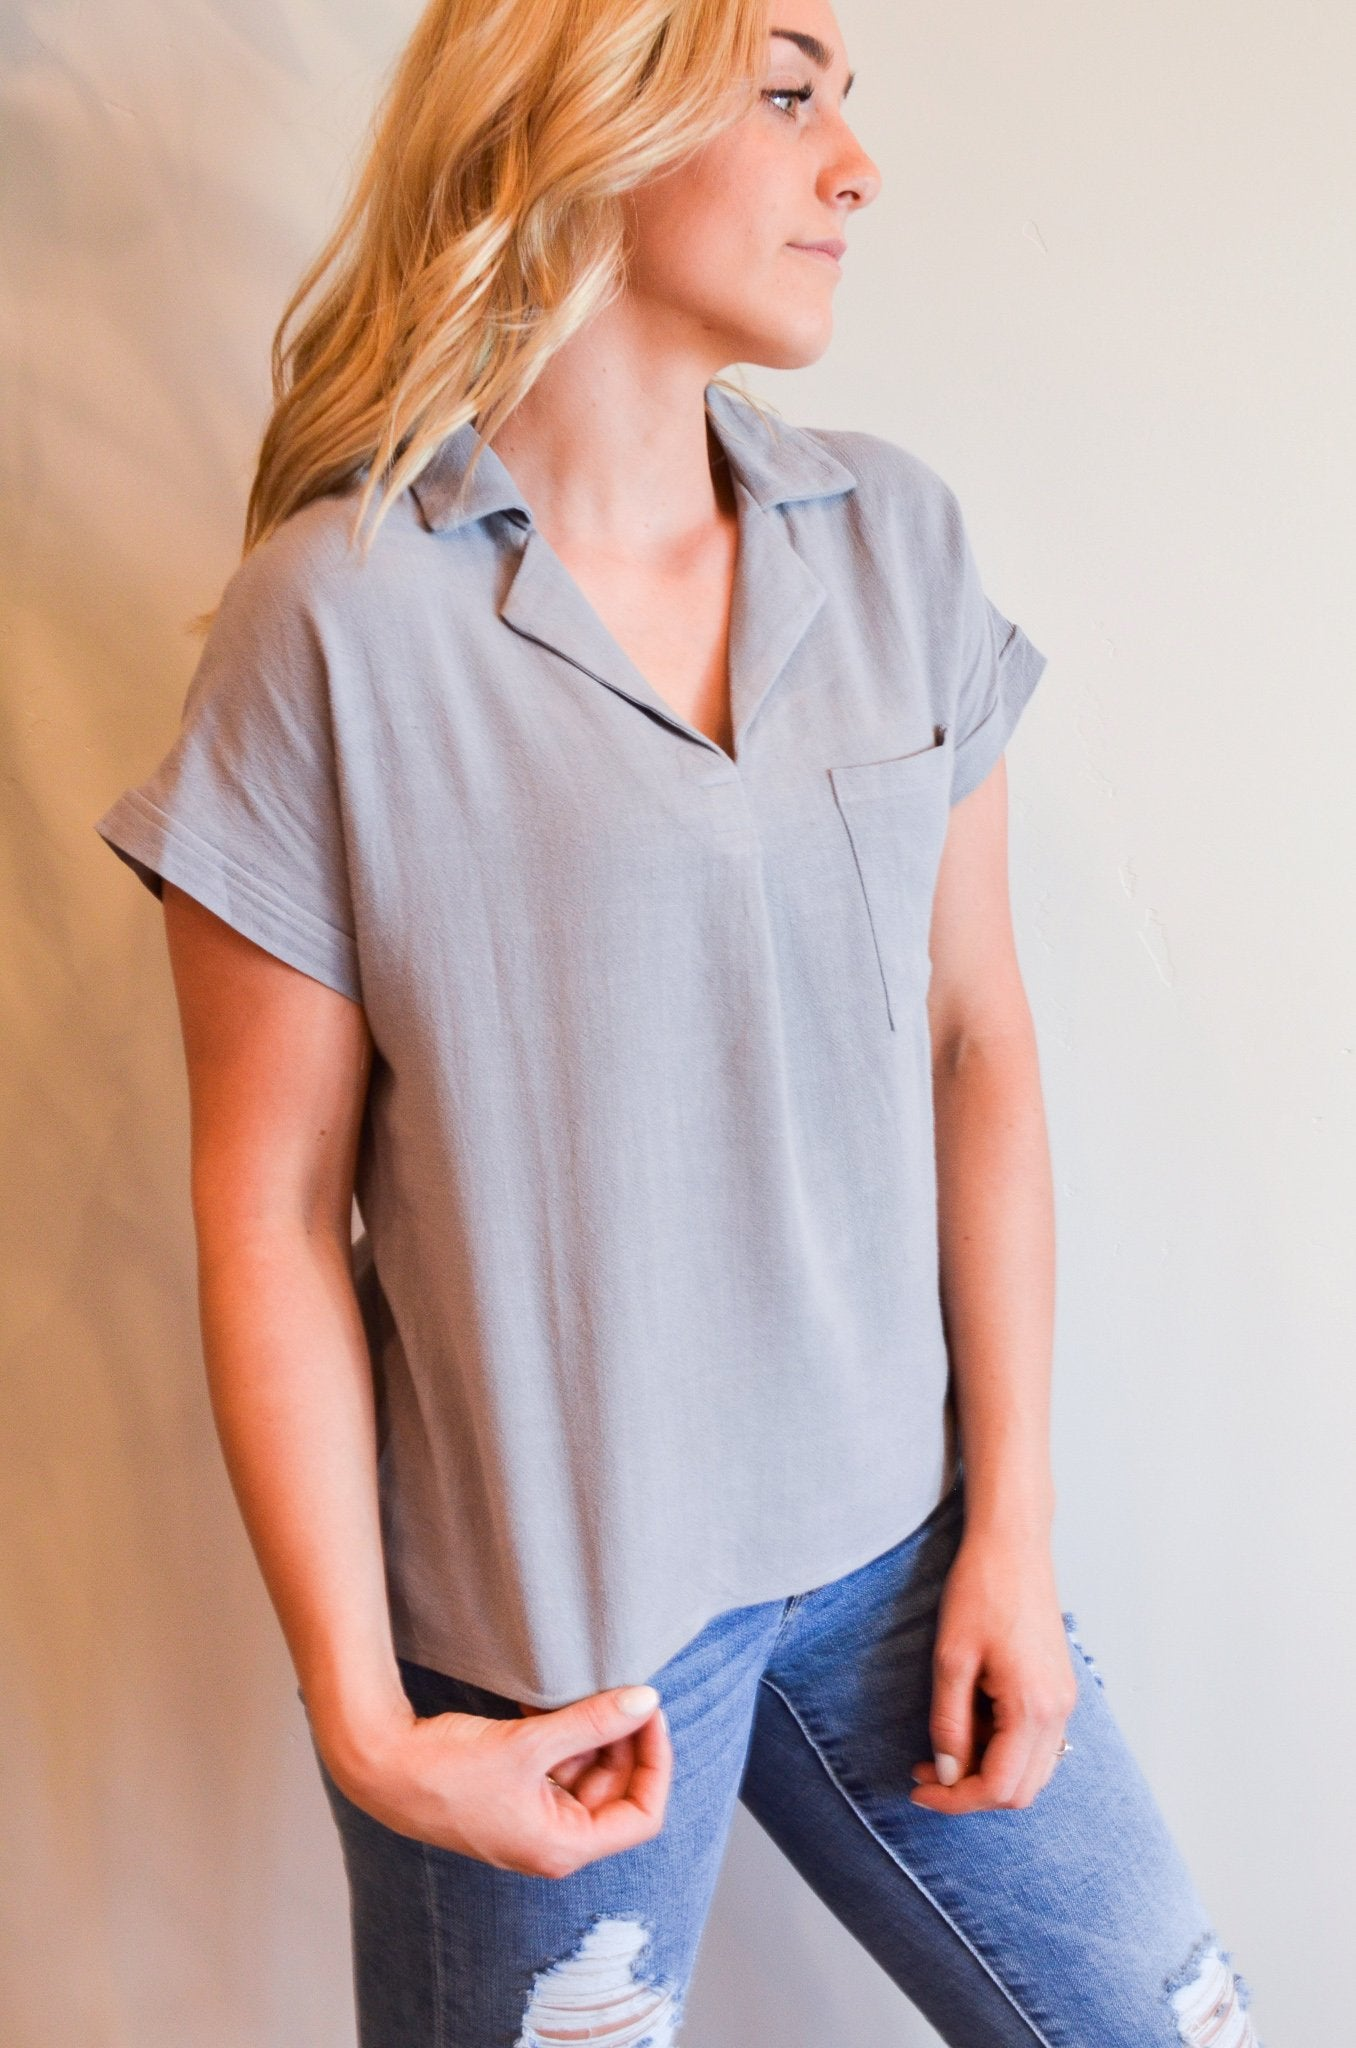 Working For The Weekend Top In Gray